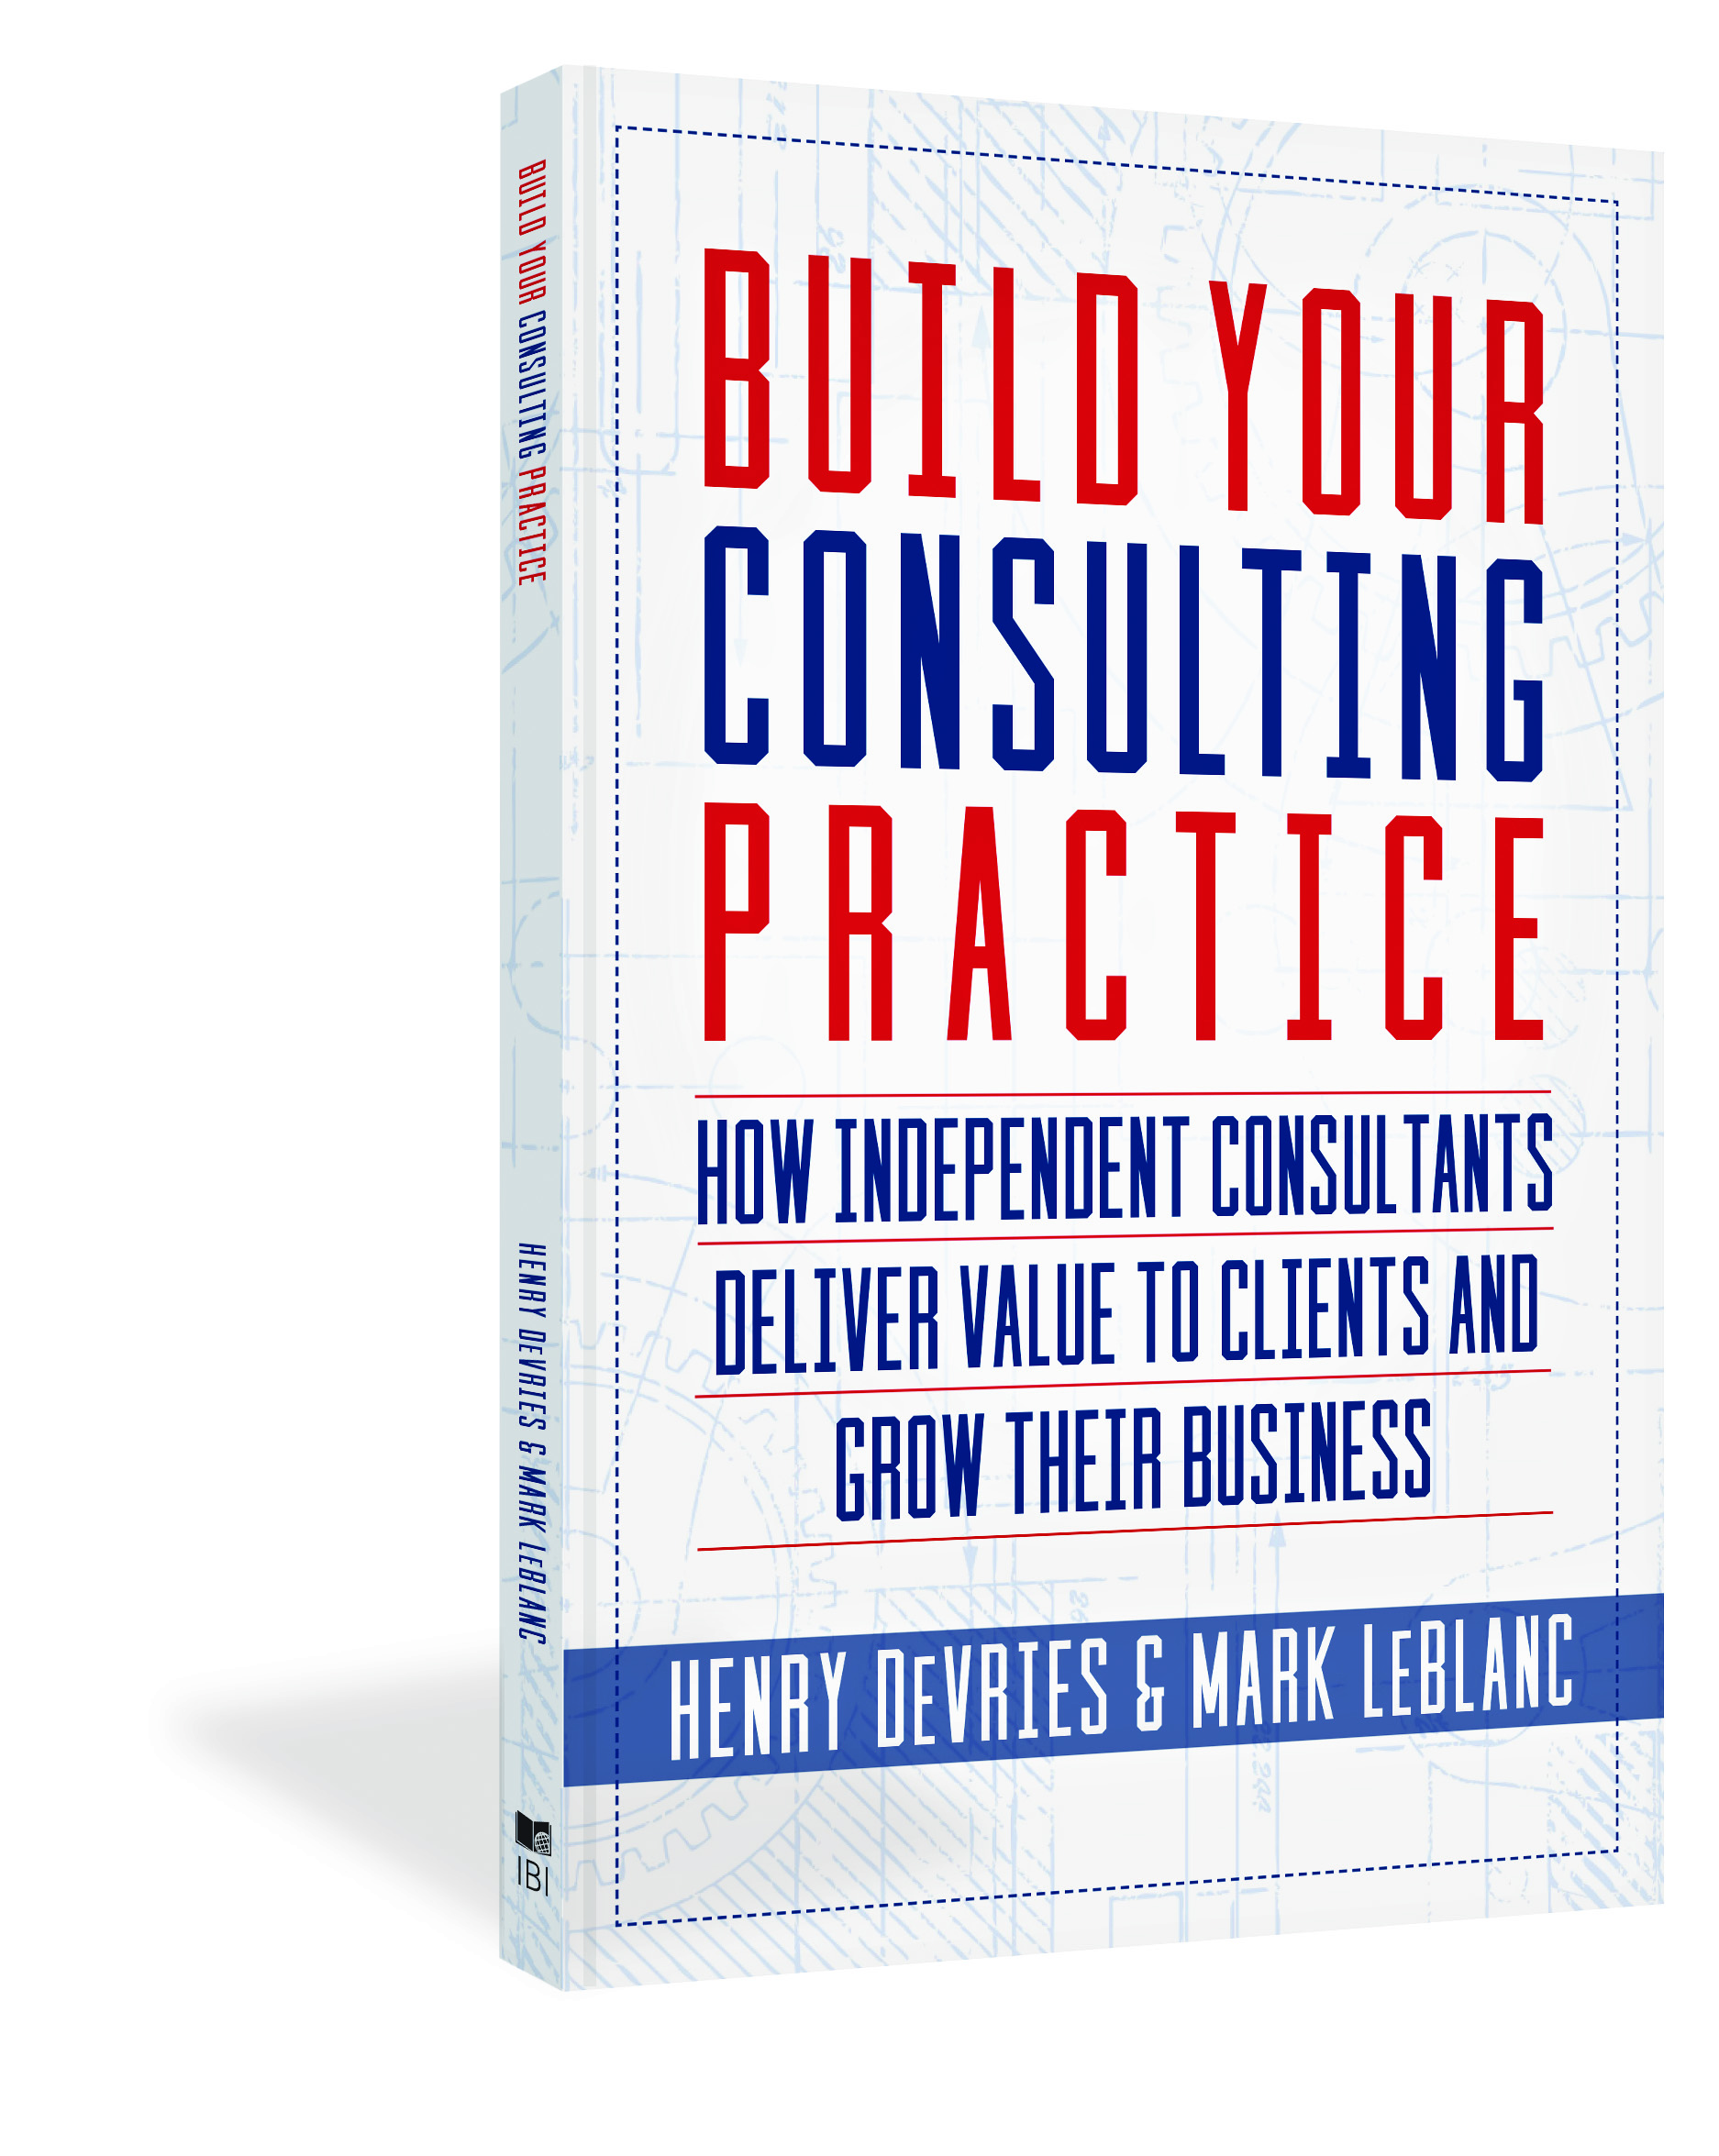 Build Your Consulting Practice - Henry DeVries & Mark LeBlanc